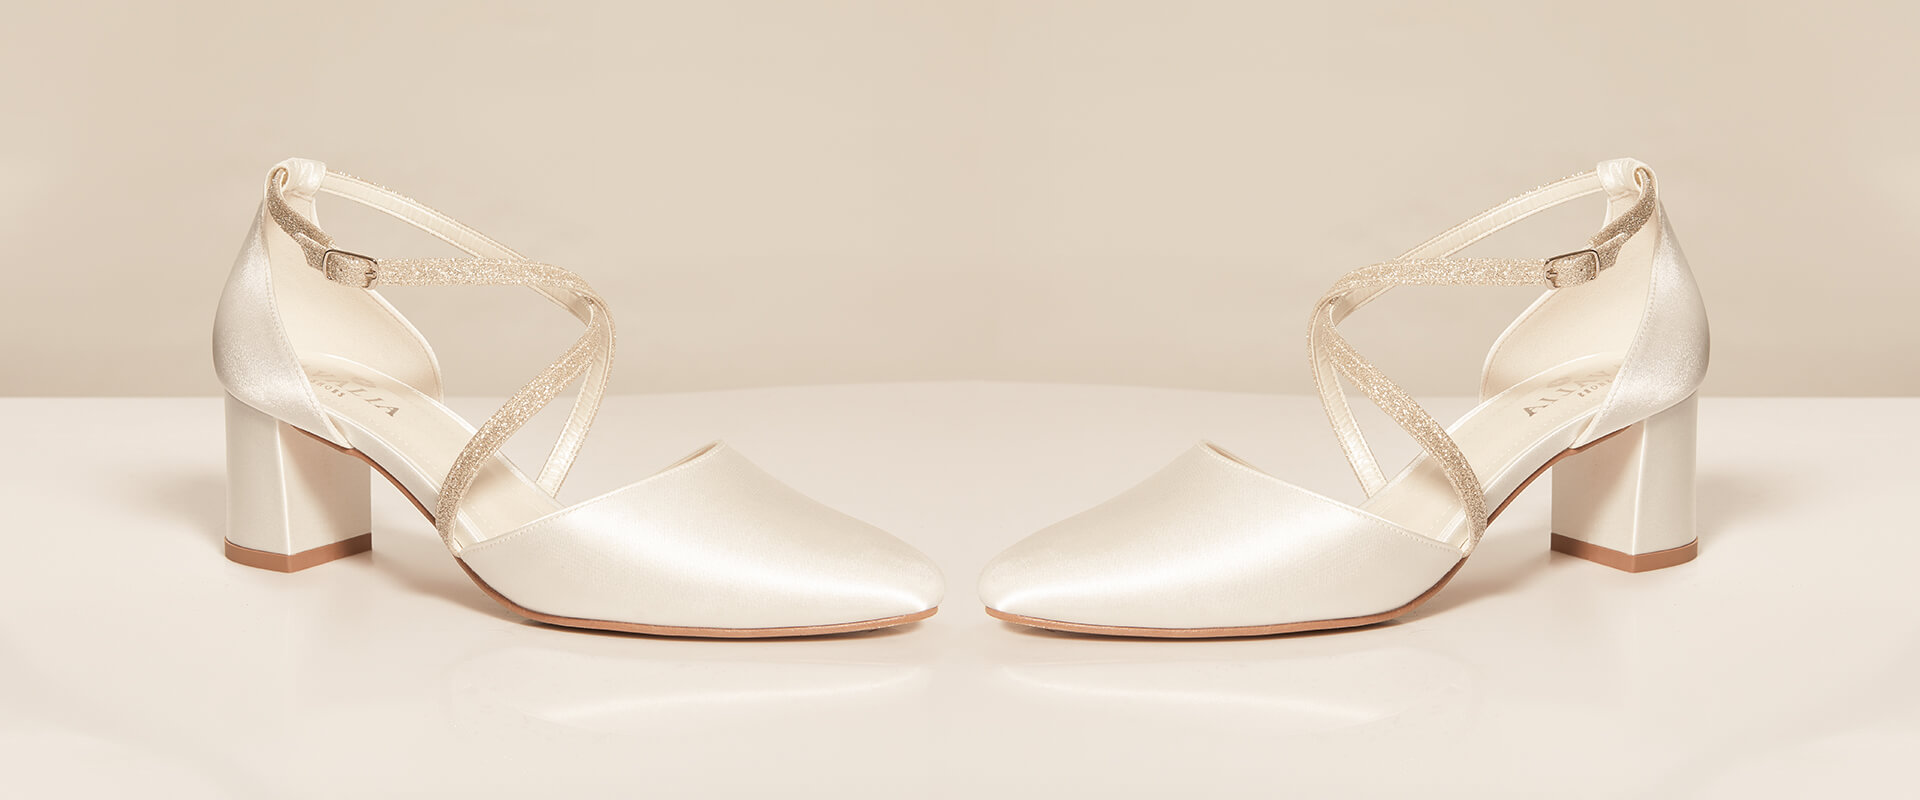 2022 AVALIA Shoes Collection